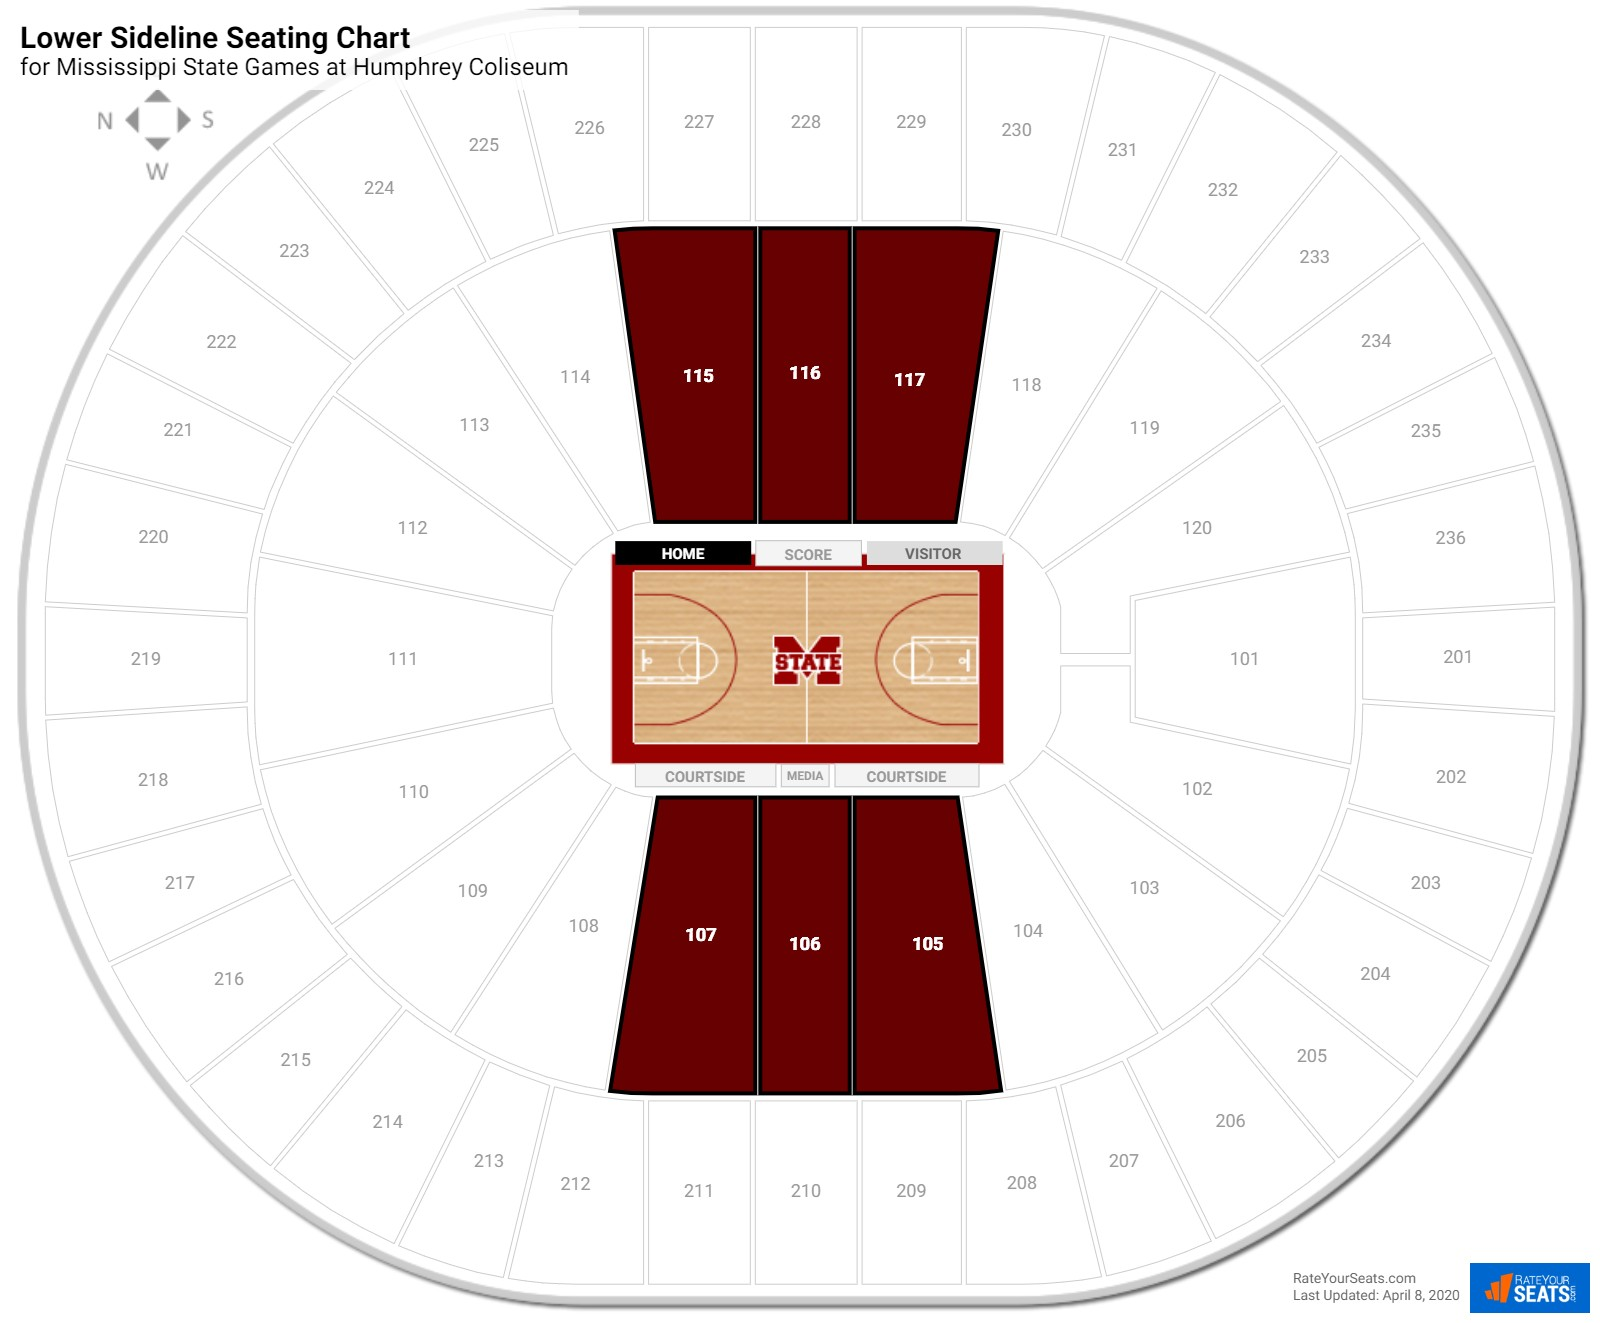 Humphrey Coliseum Lower Sideline seating chart